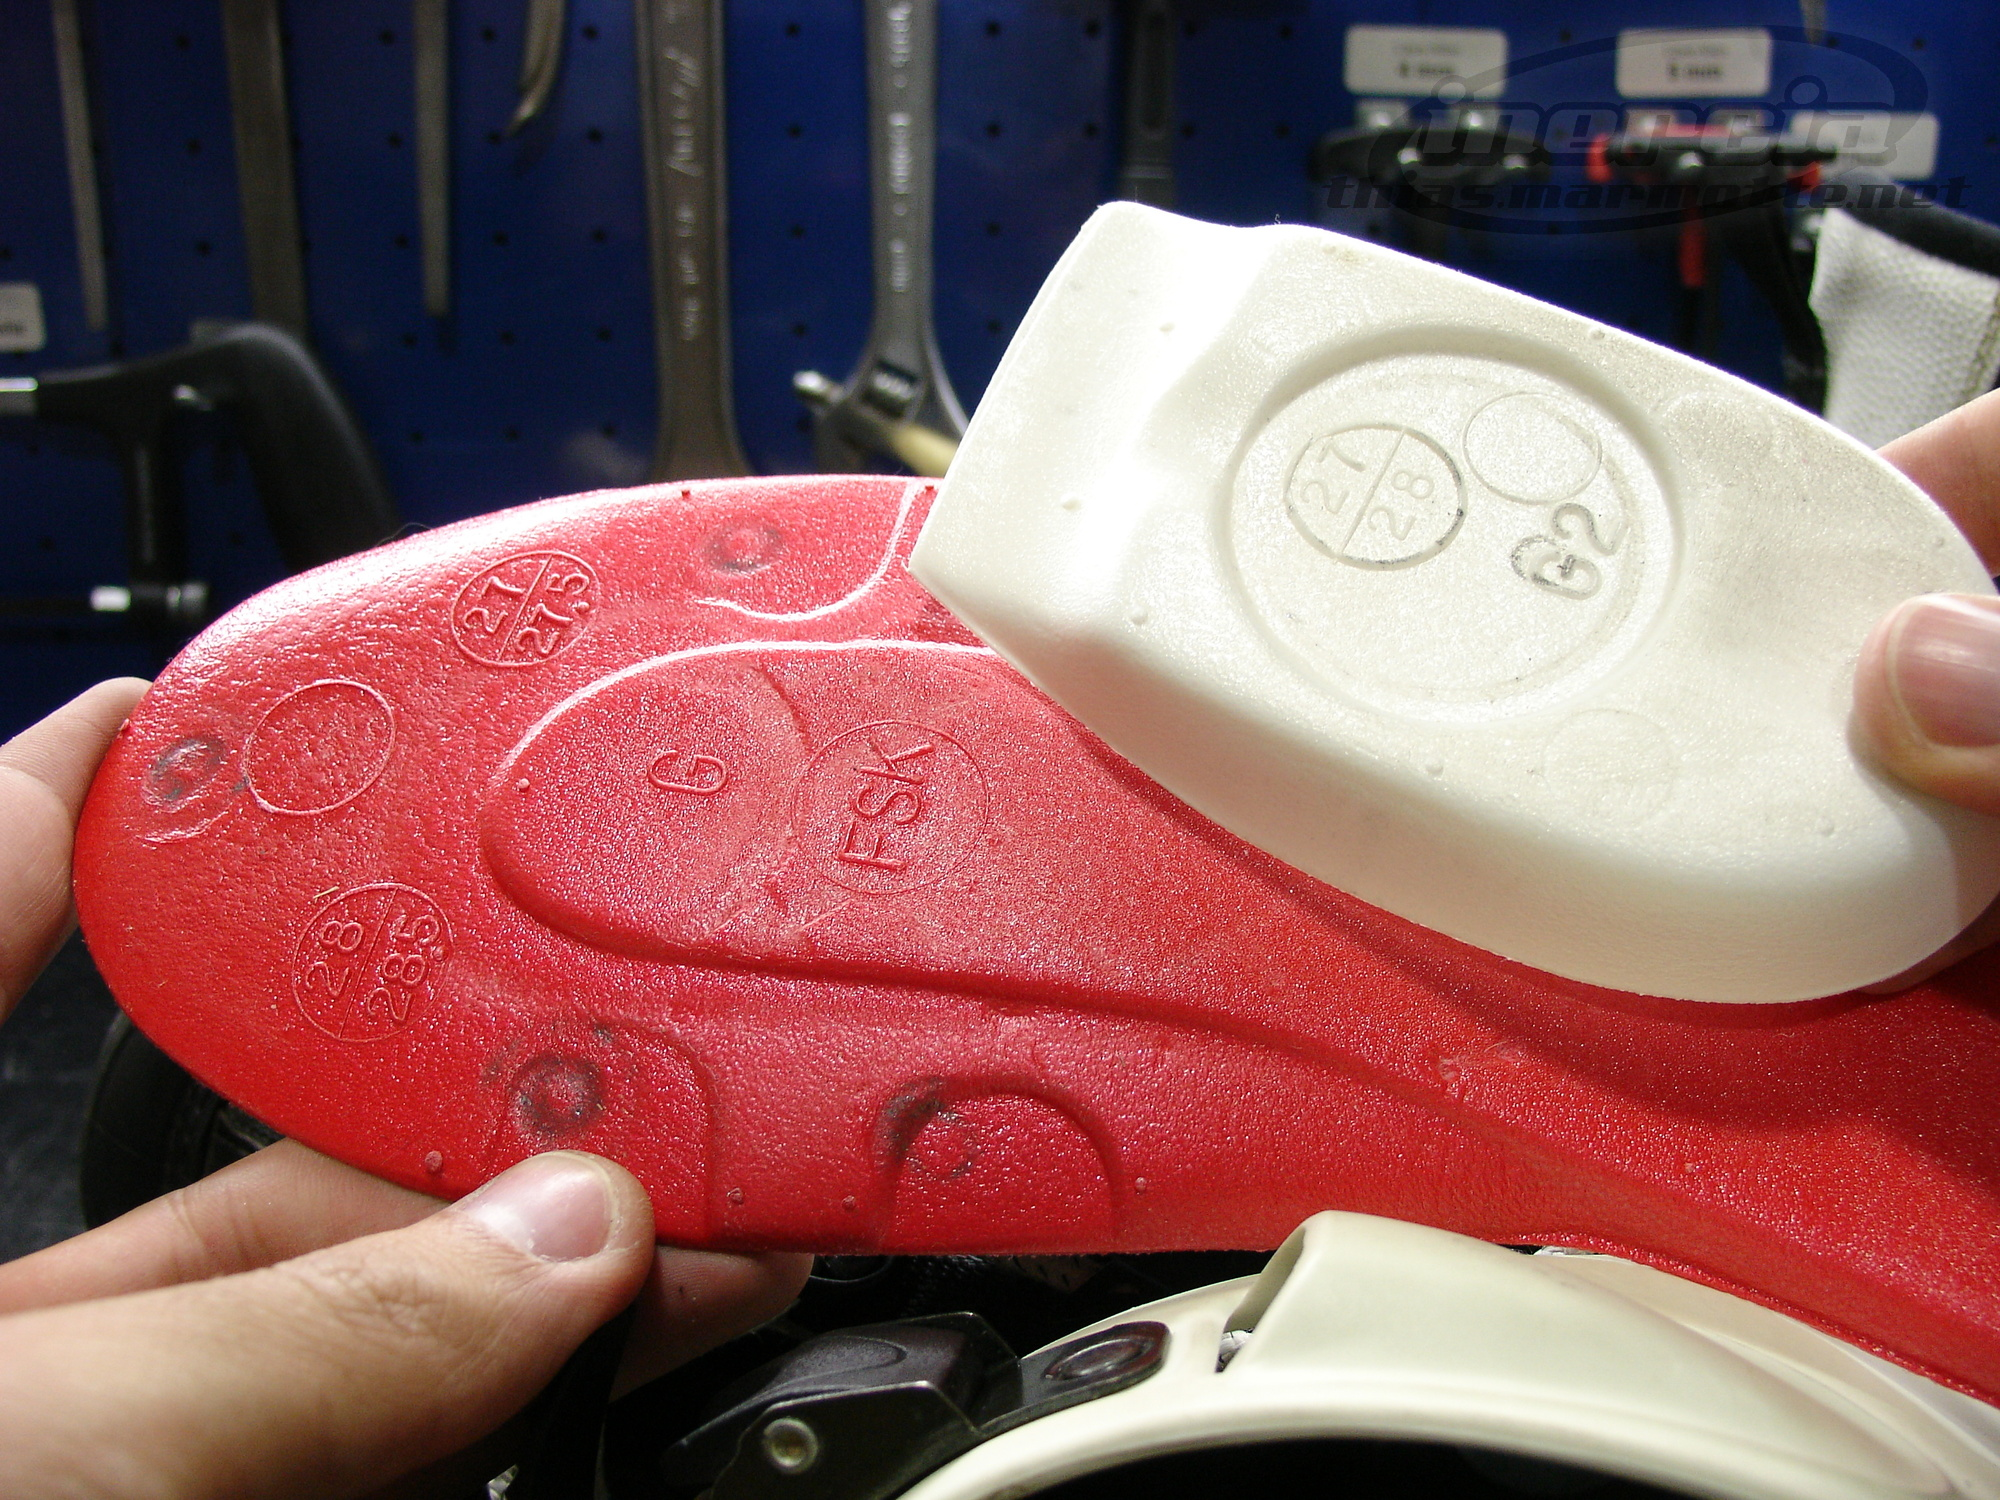 Boot sole and shock absorber